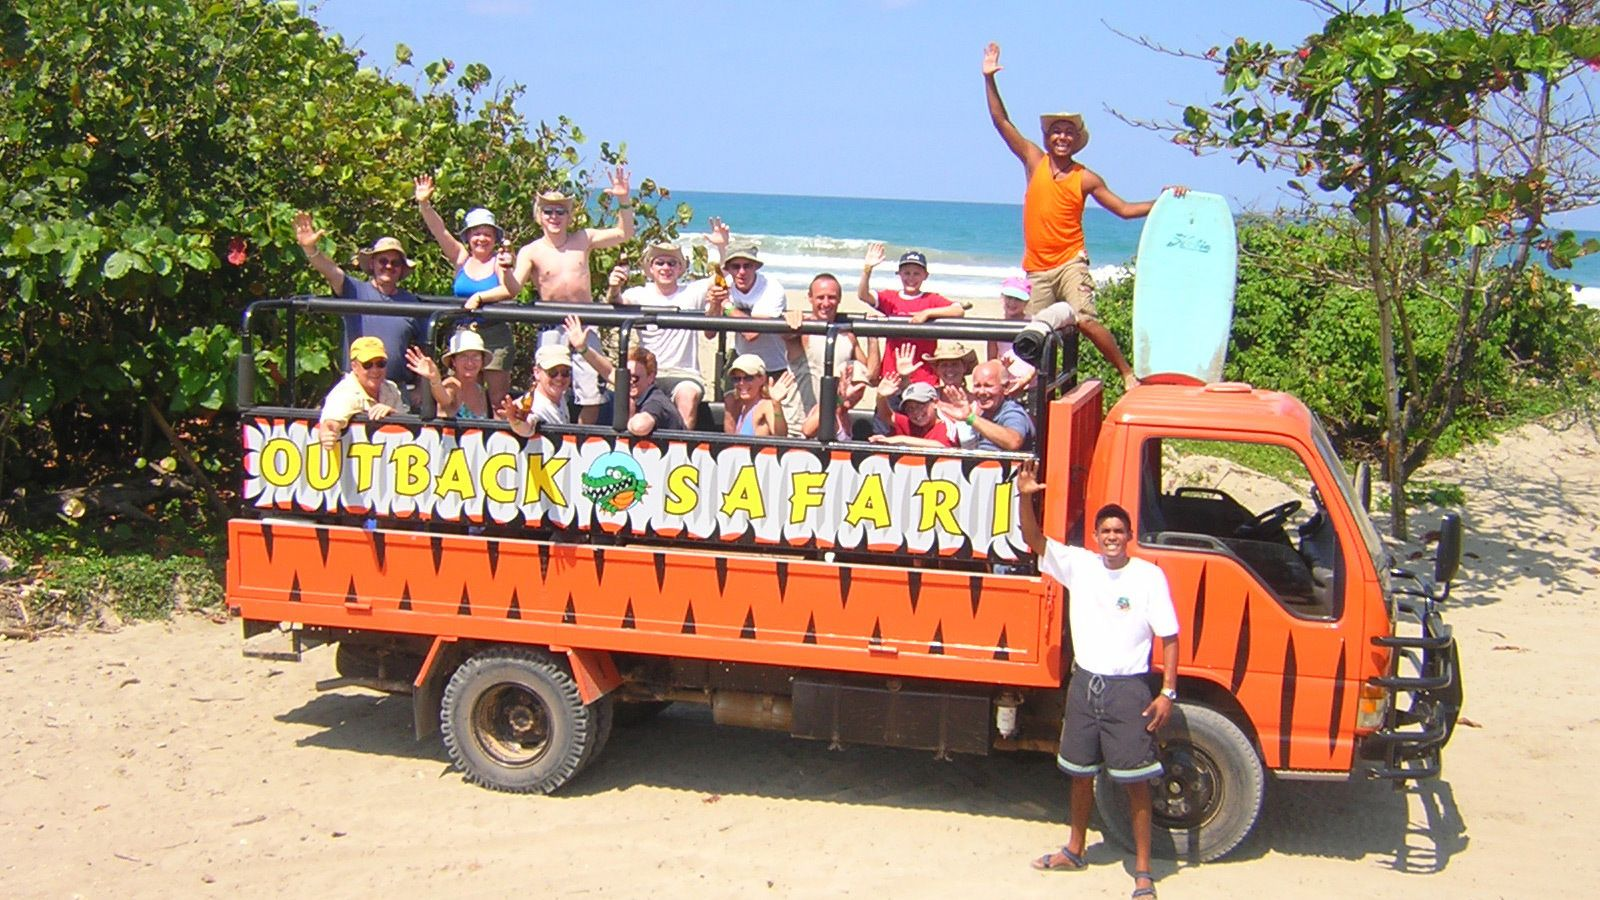 Group picture of activity-goers waving from open-air bus on the beach